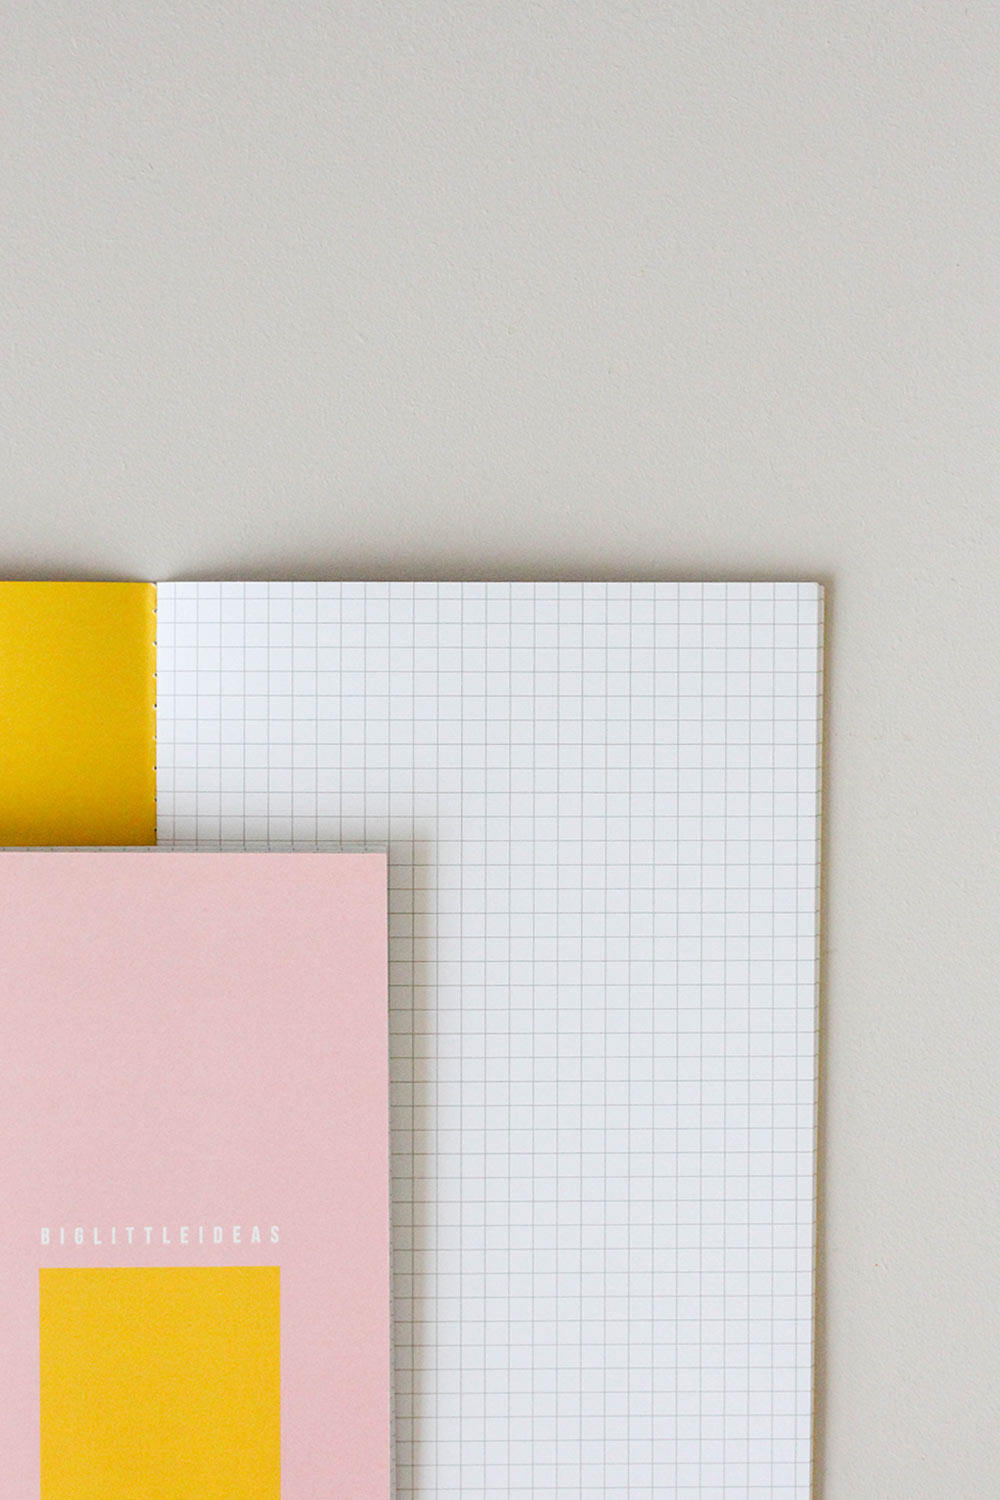 A5 Big Little Ideas Softcover Notebook